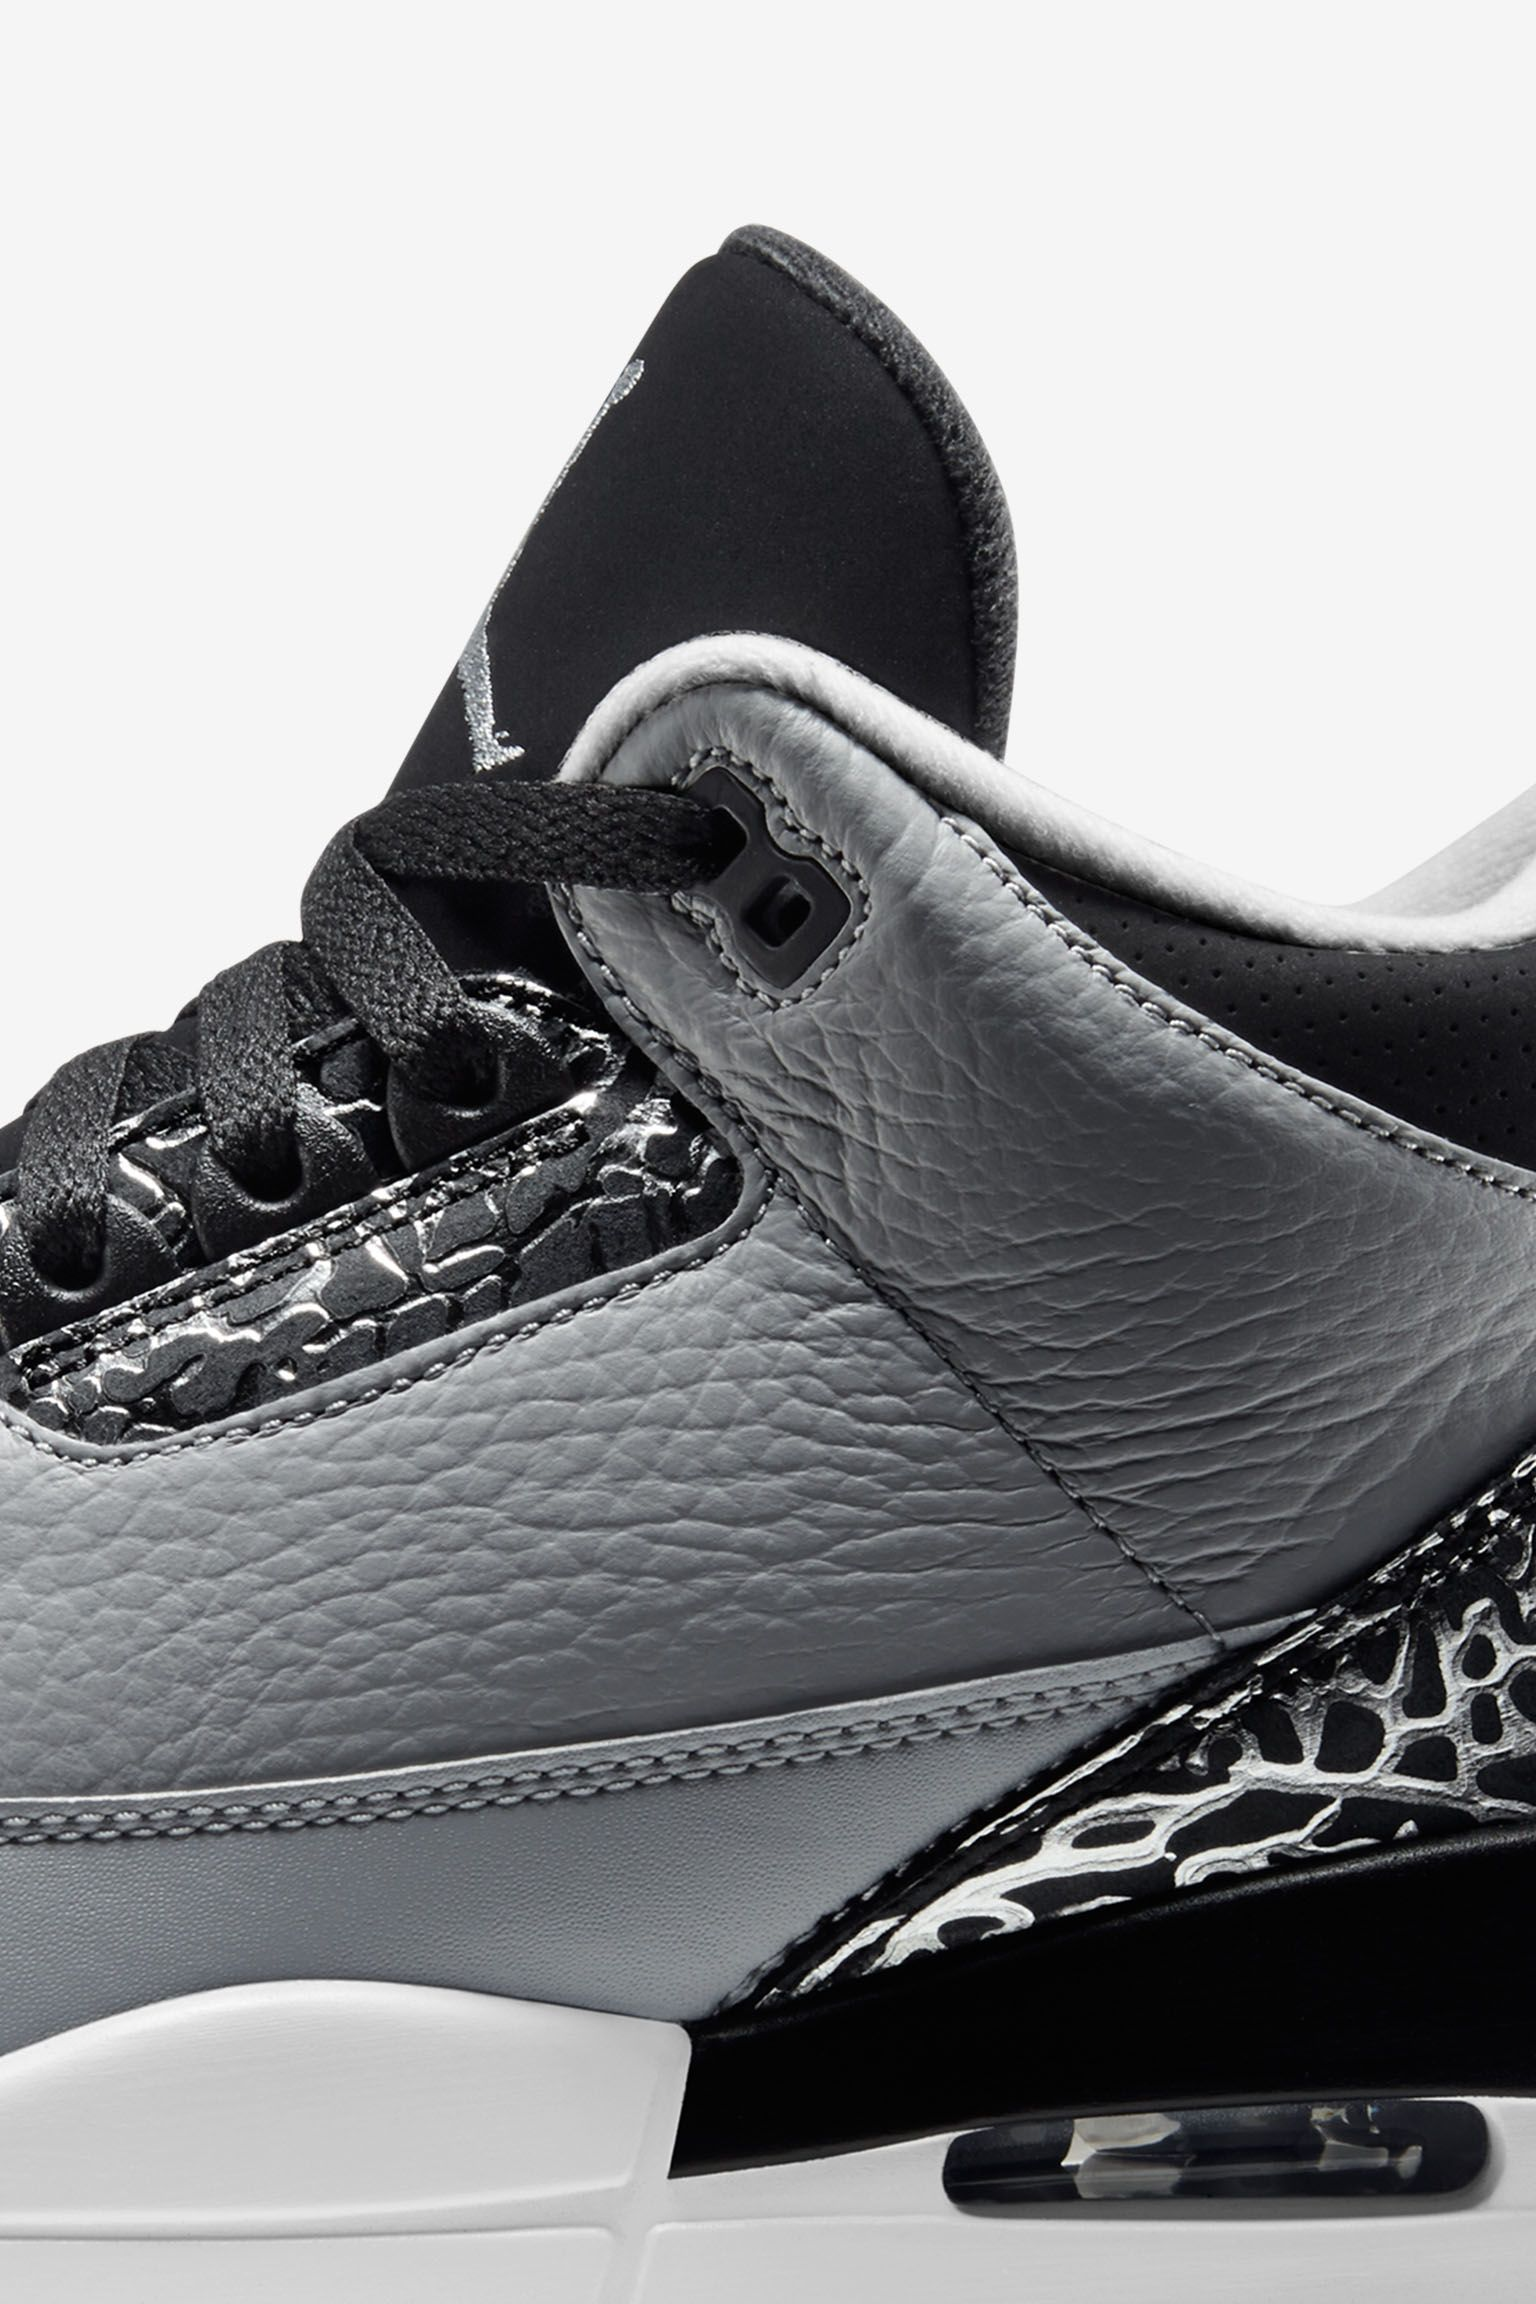 Air Jordan 3 Retro 'Wolf Grey'. Release Date